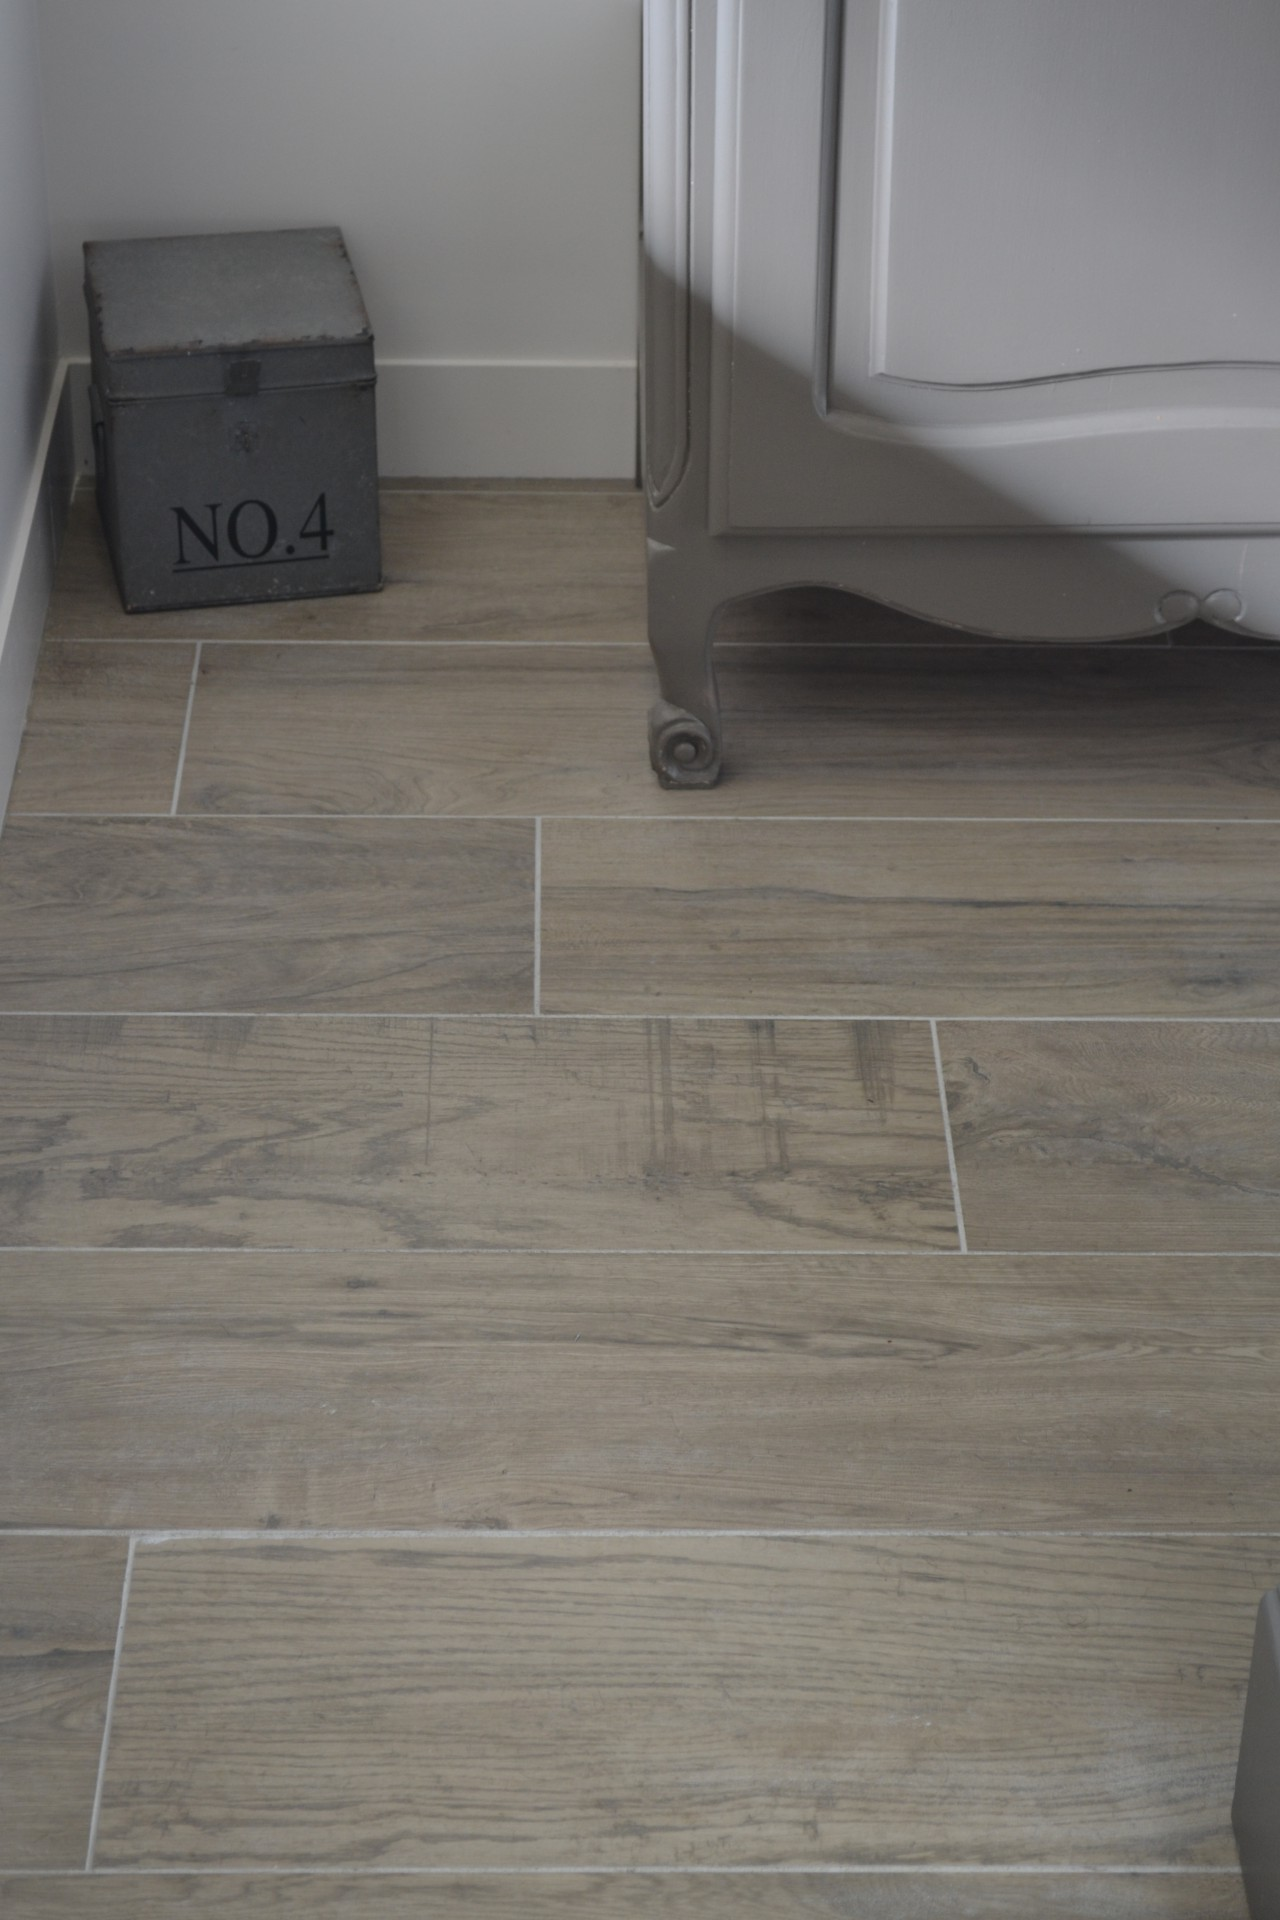 Poser du carrelage imitation parquet for Carrelage imitation parquet prix